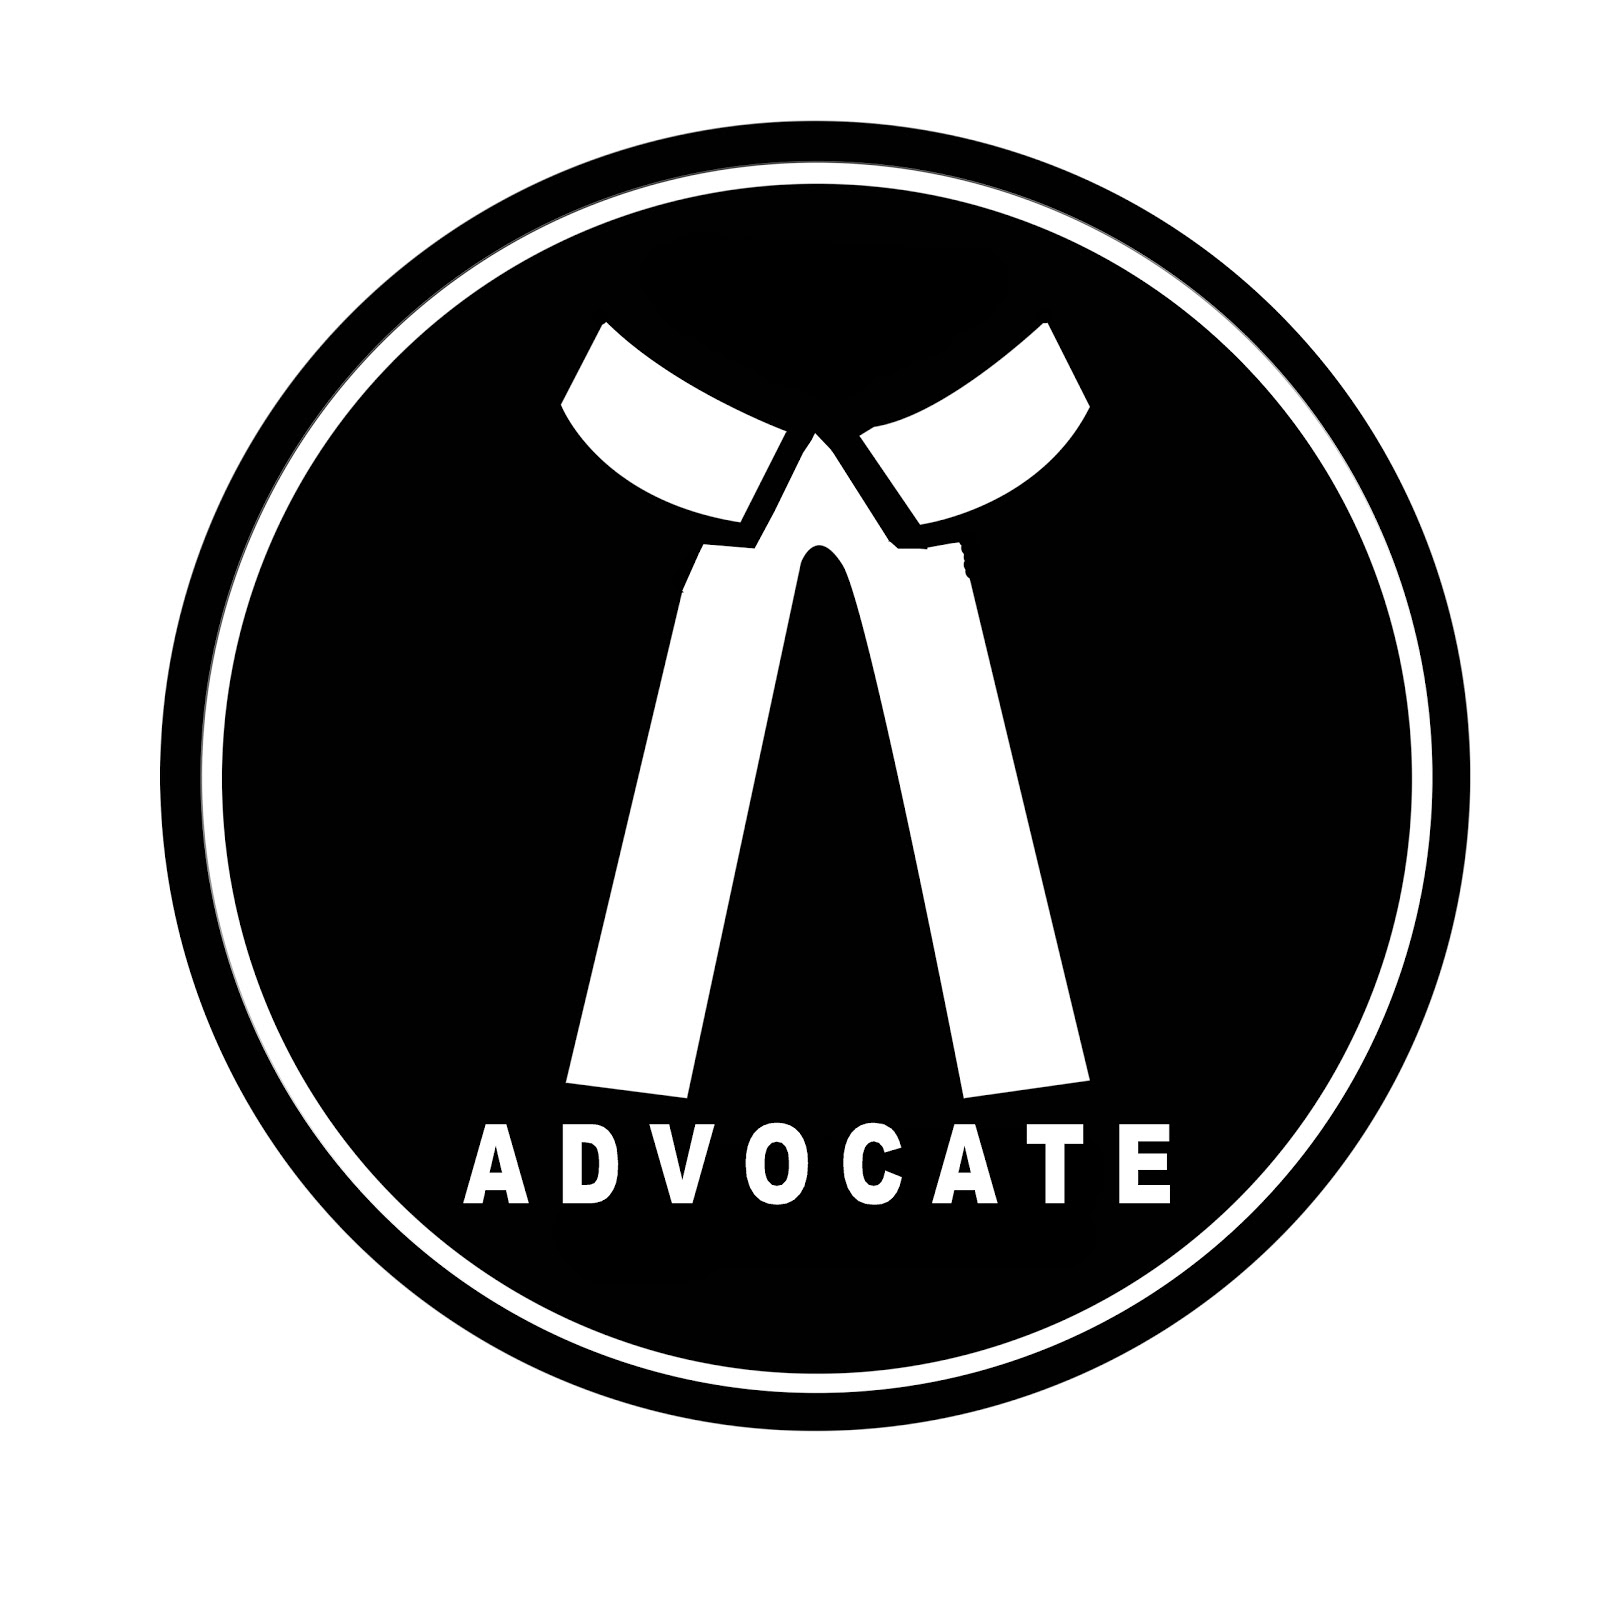 For More Law Logos CLICK HERE